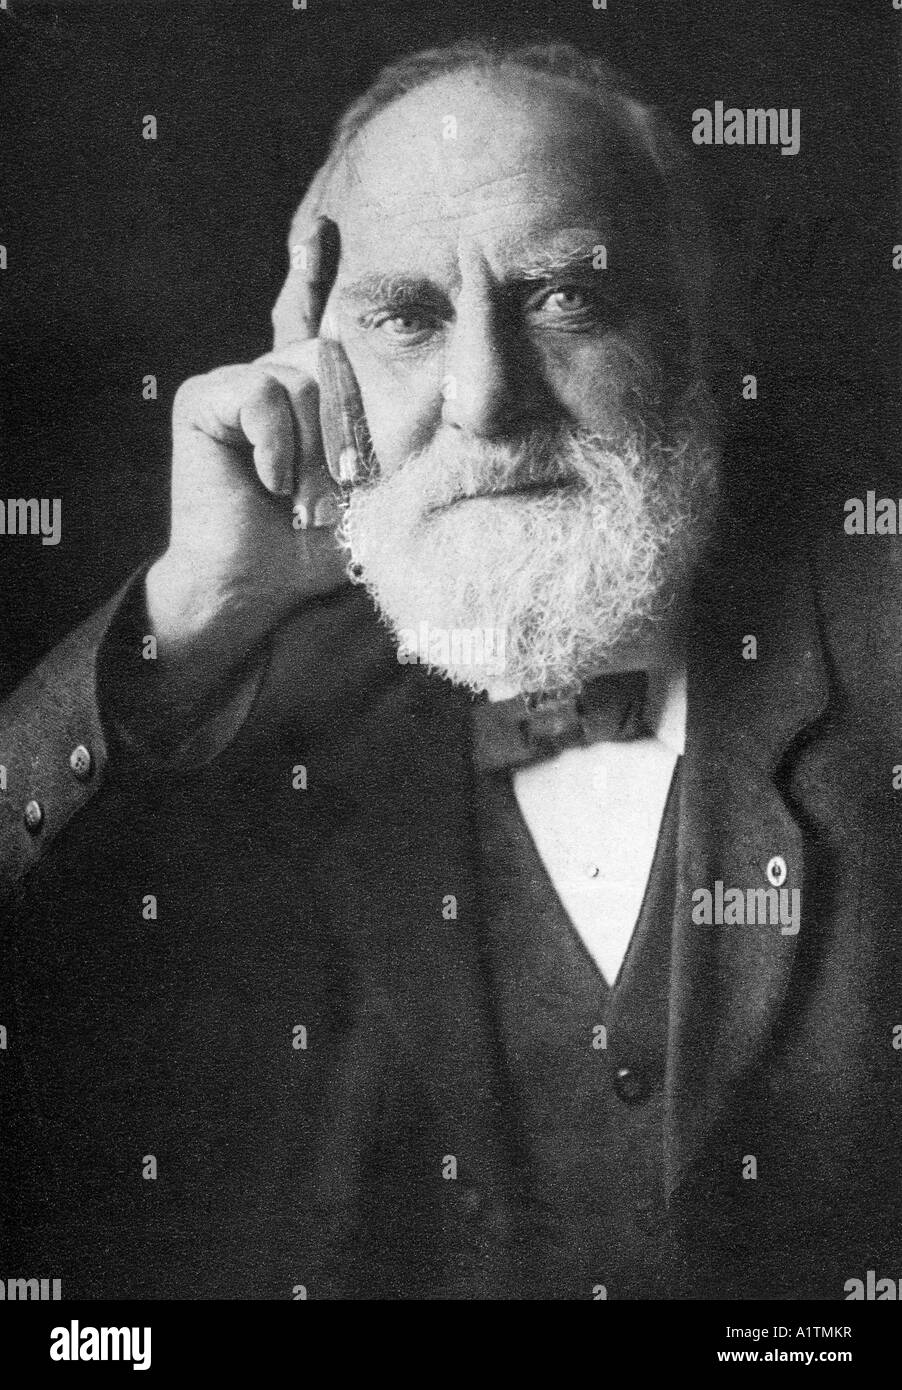 William T Stead July 5 1849 to April 15 1912 English journalist publisher and social crusader - Stock Image